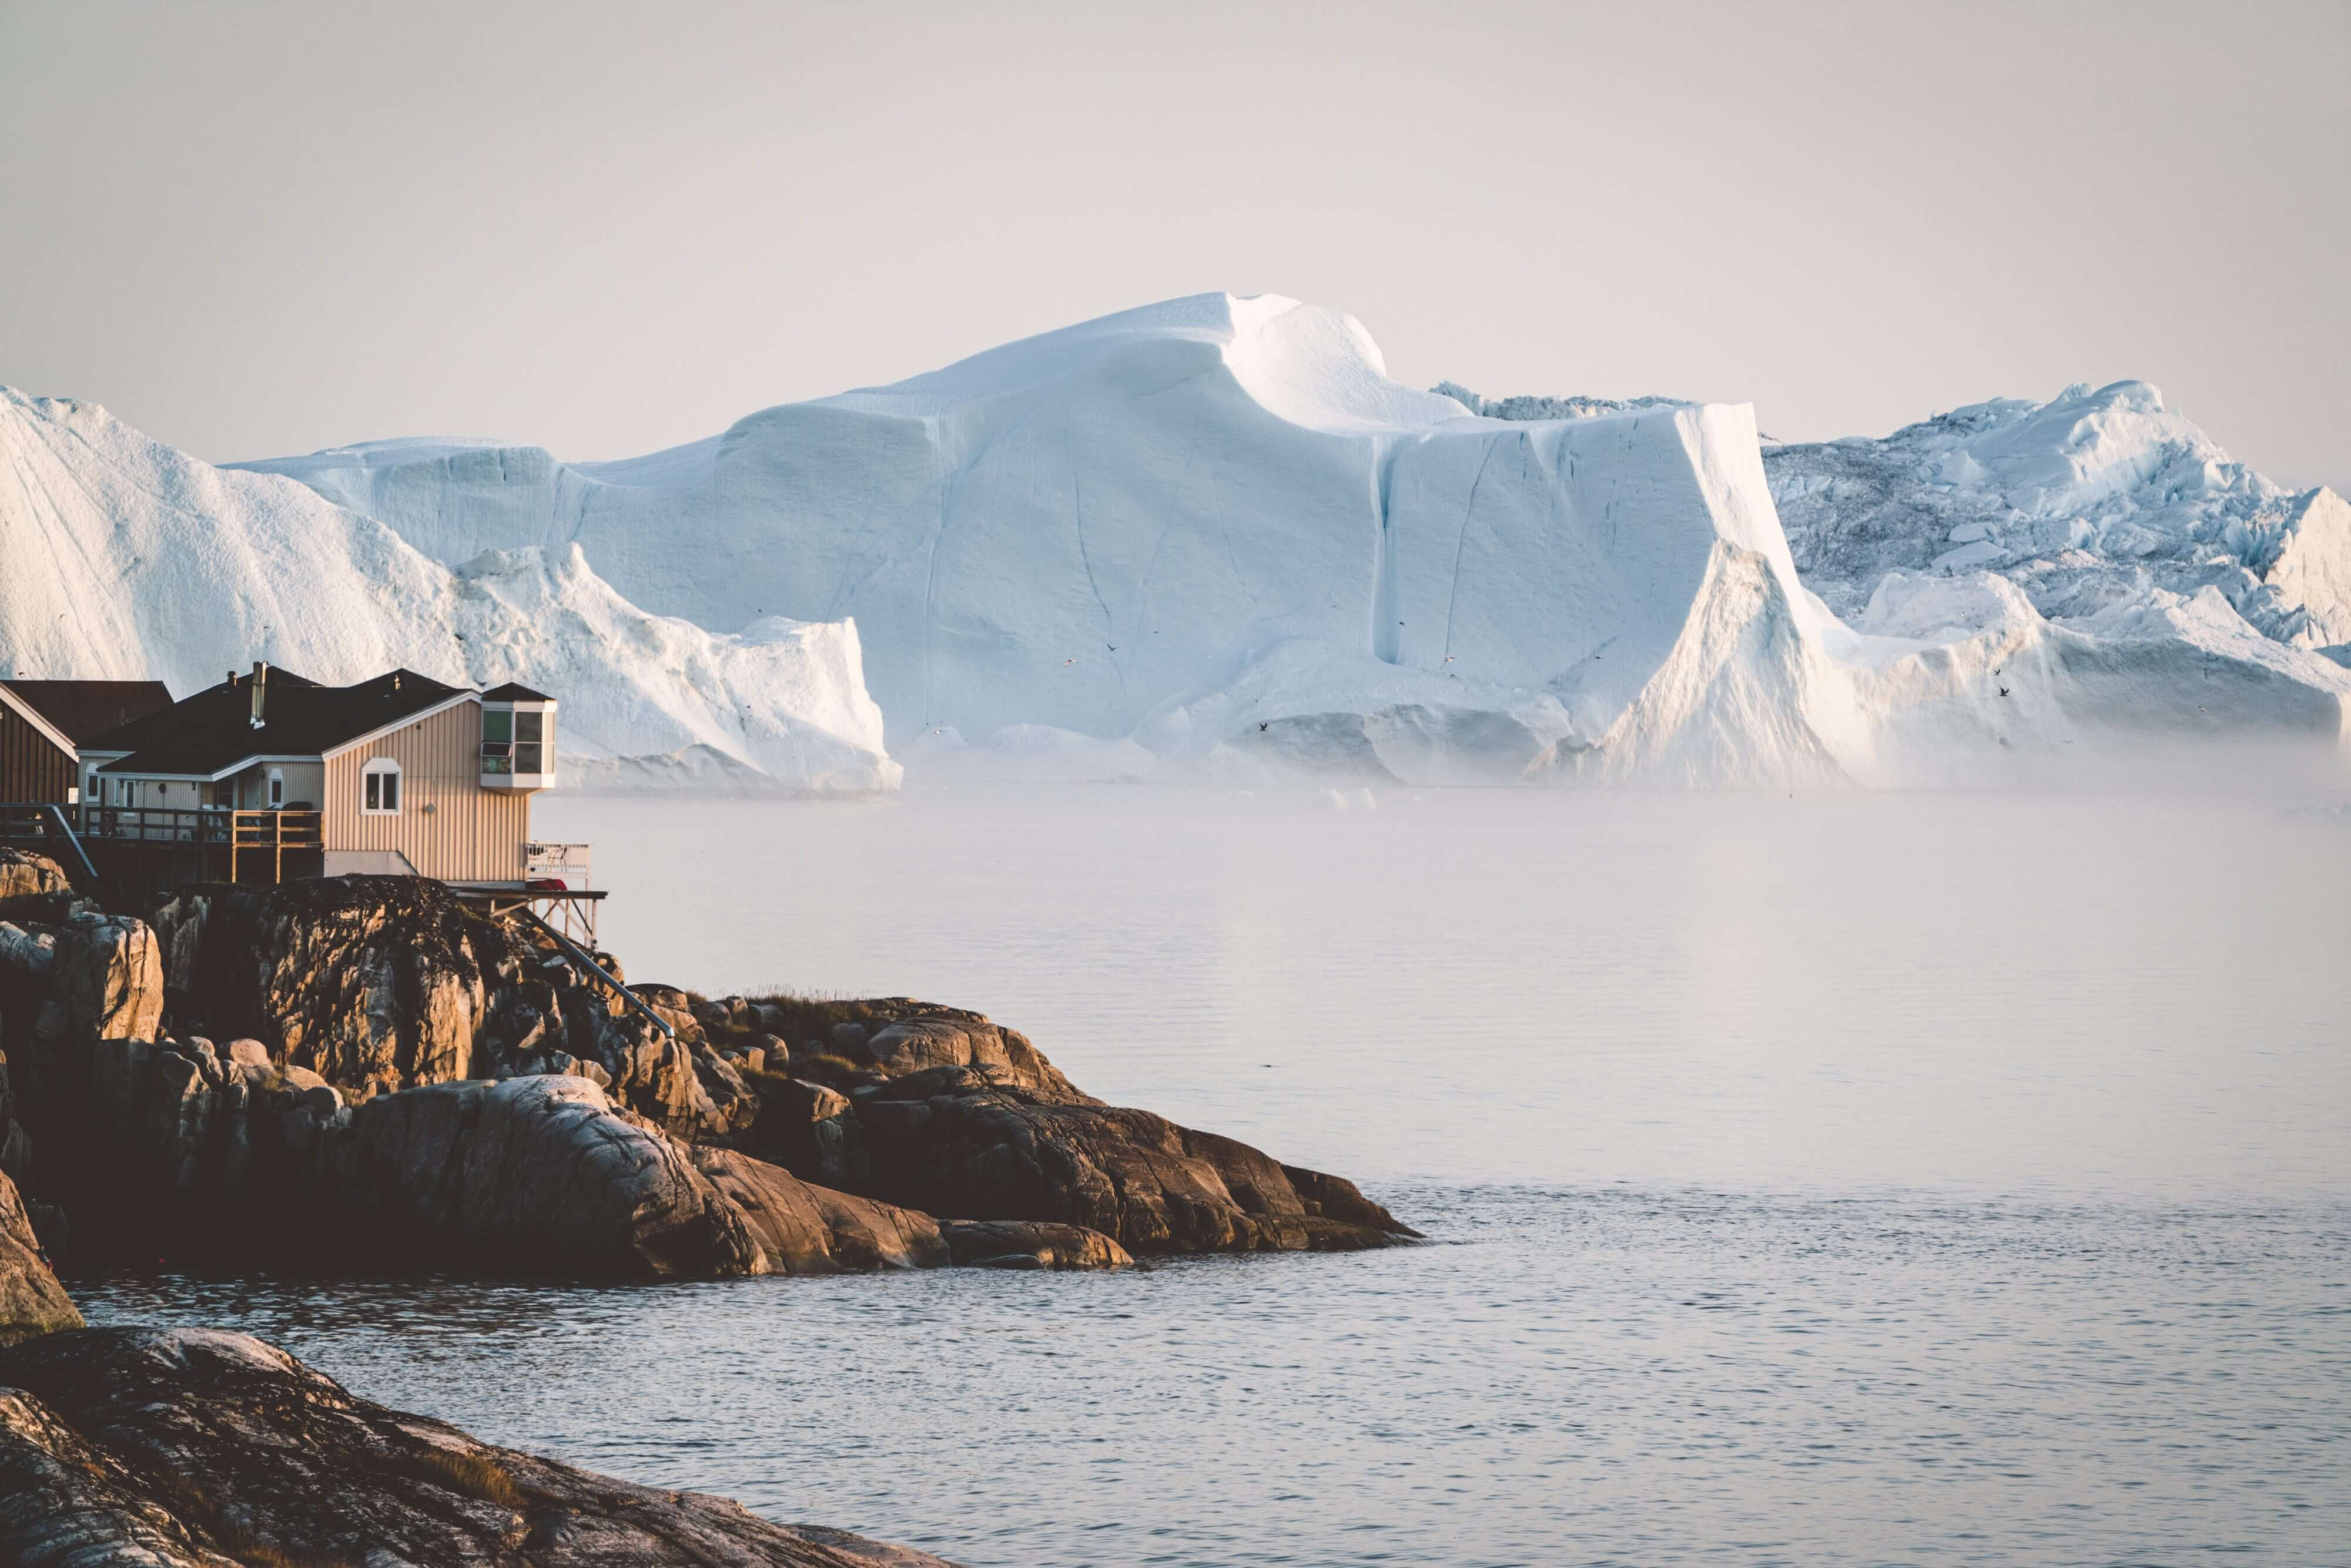 The incredible arctic city of Ilulissat, Greenland at sunrise.